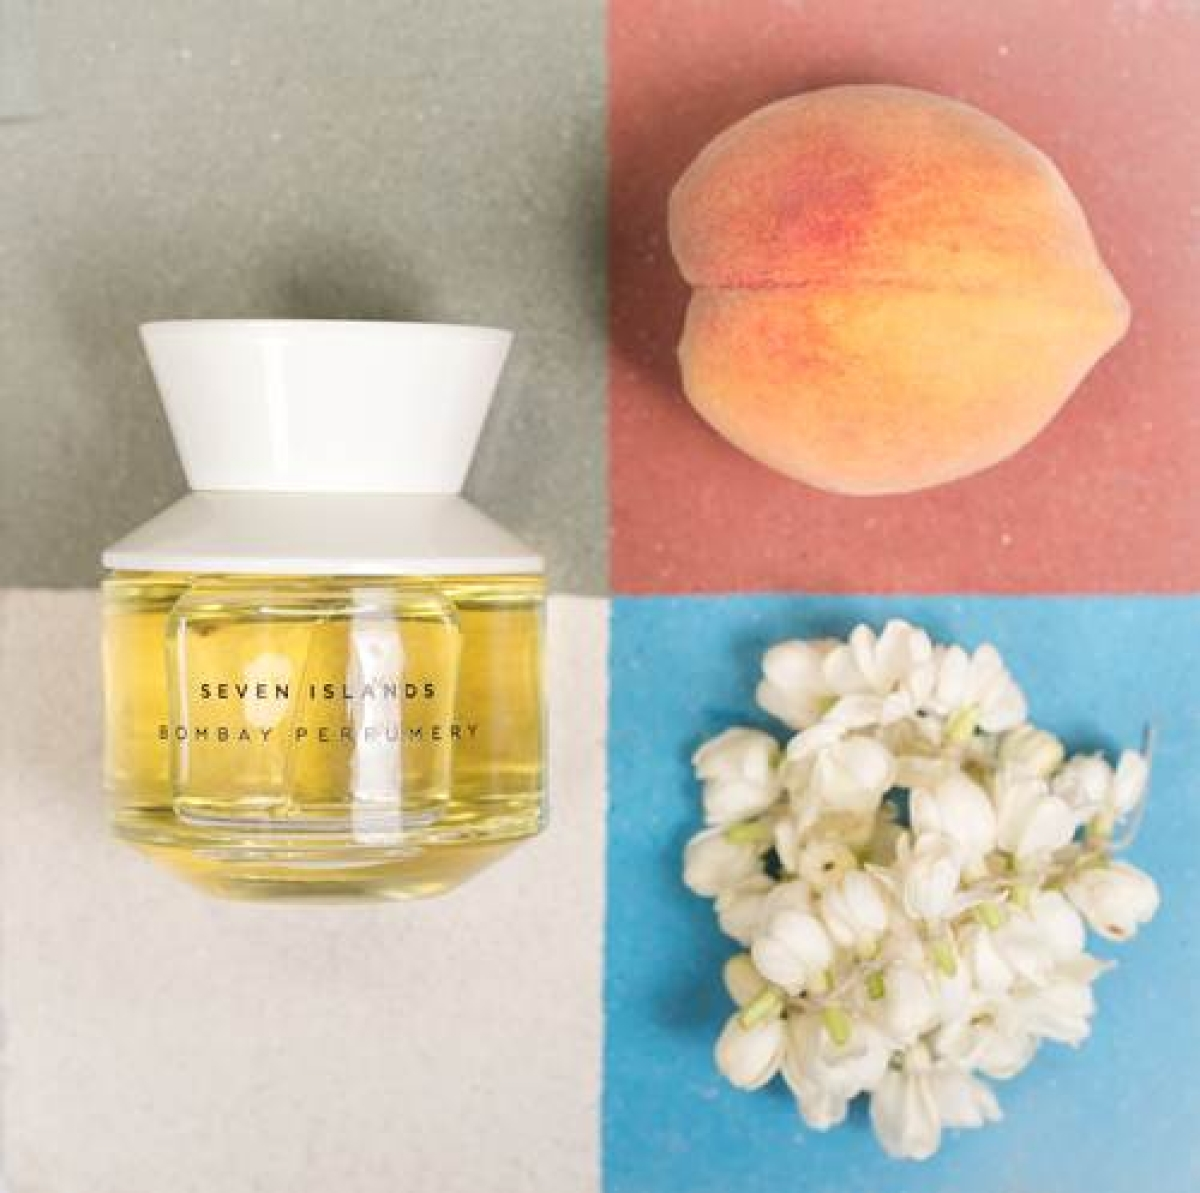 Bombay perfumes tryst with scent